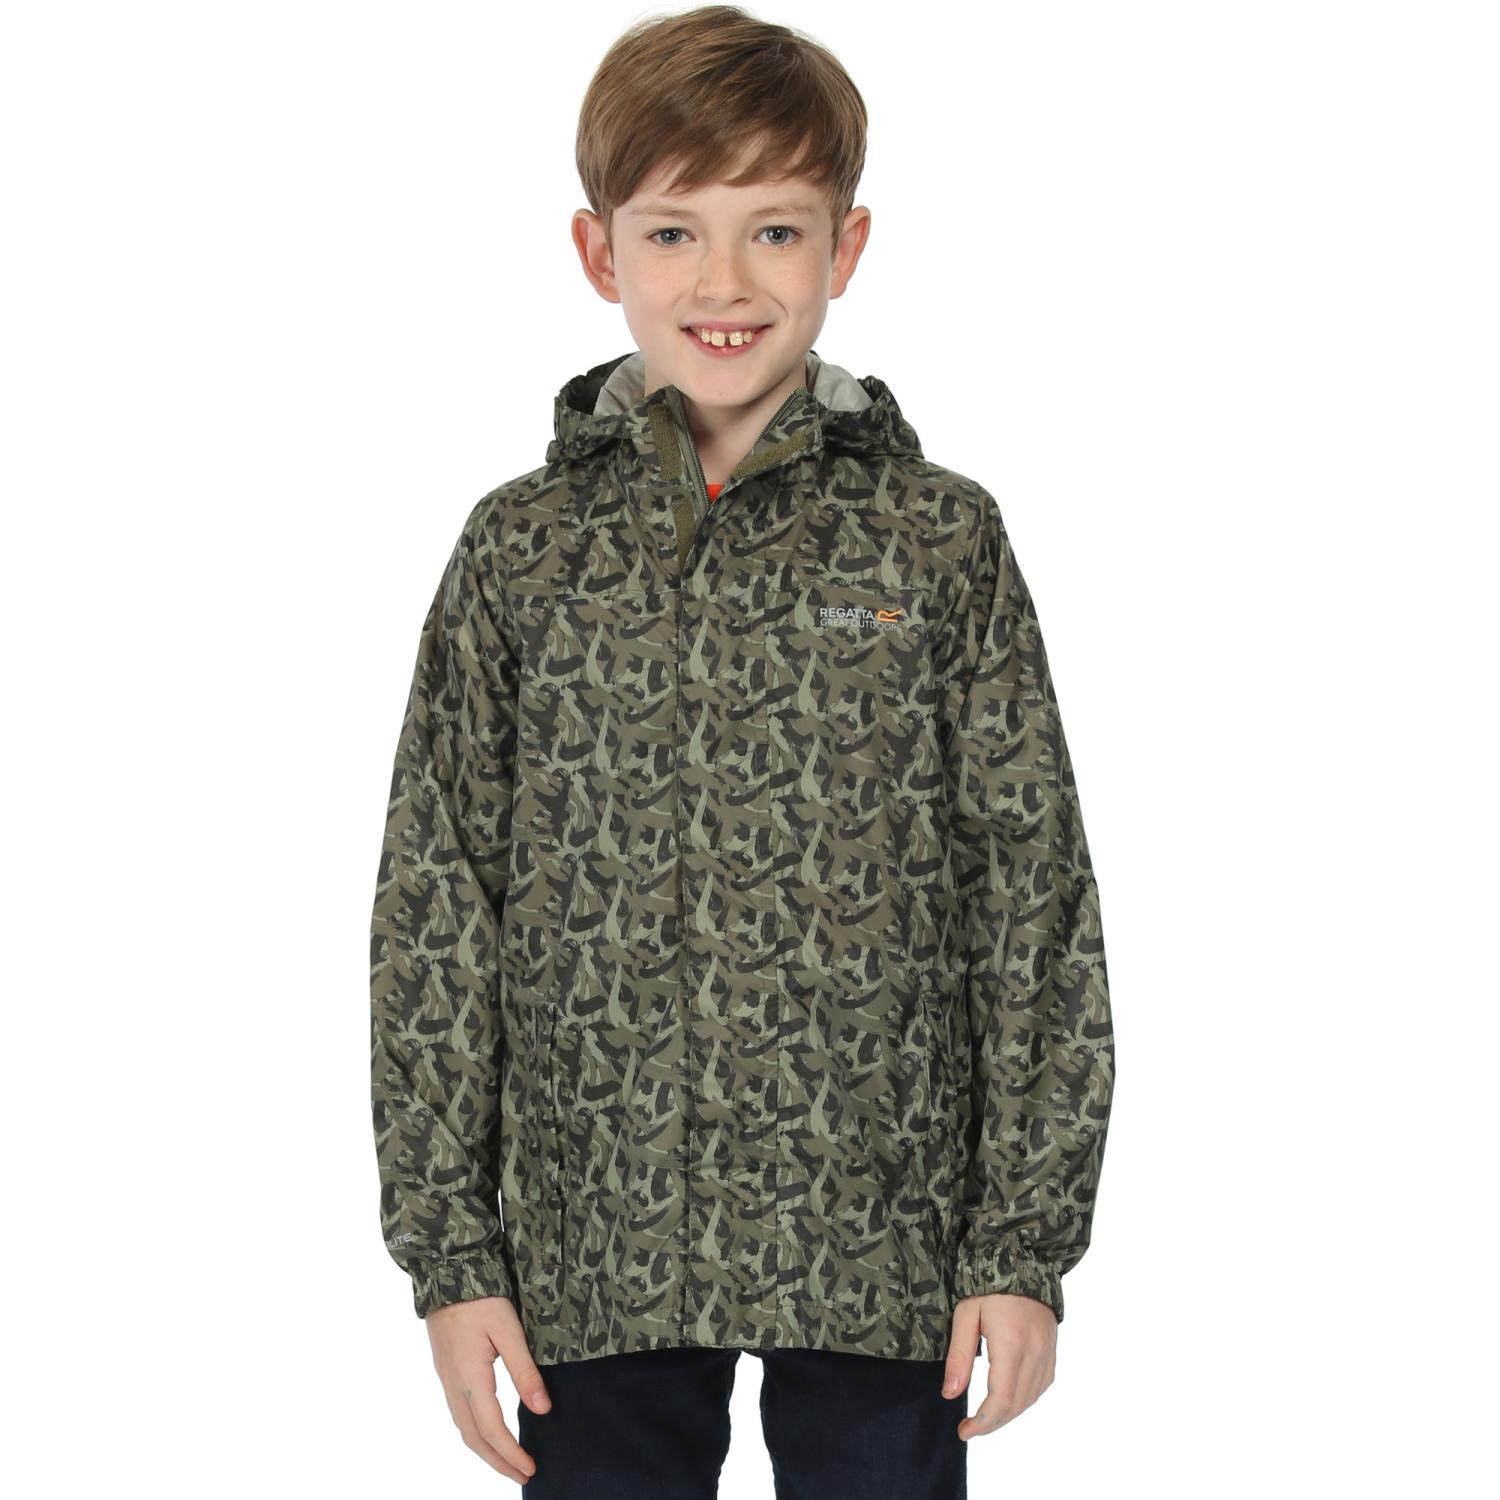 Kids Printed Pack It Jacket Fauna